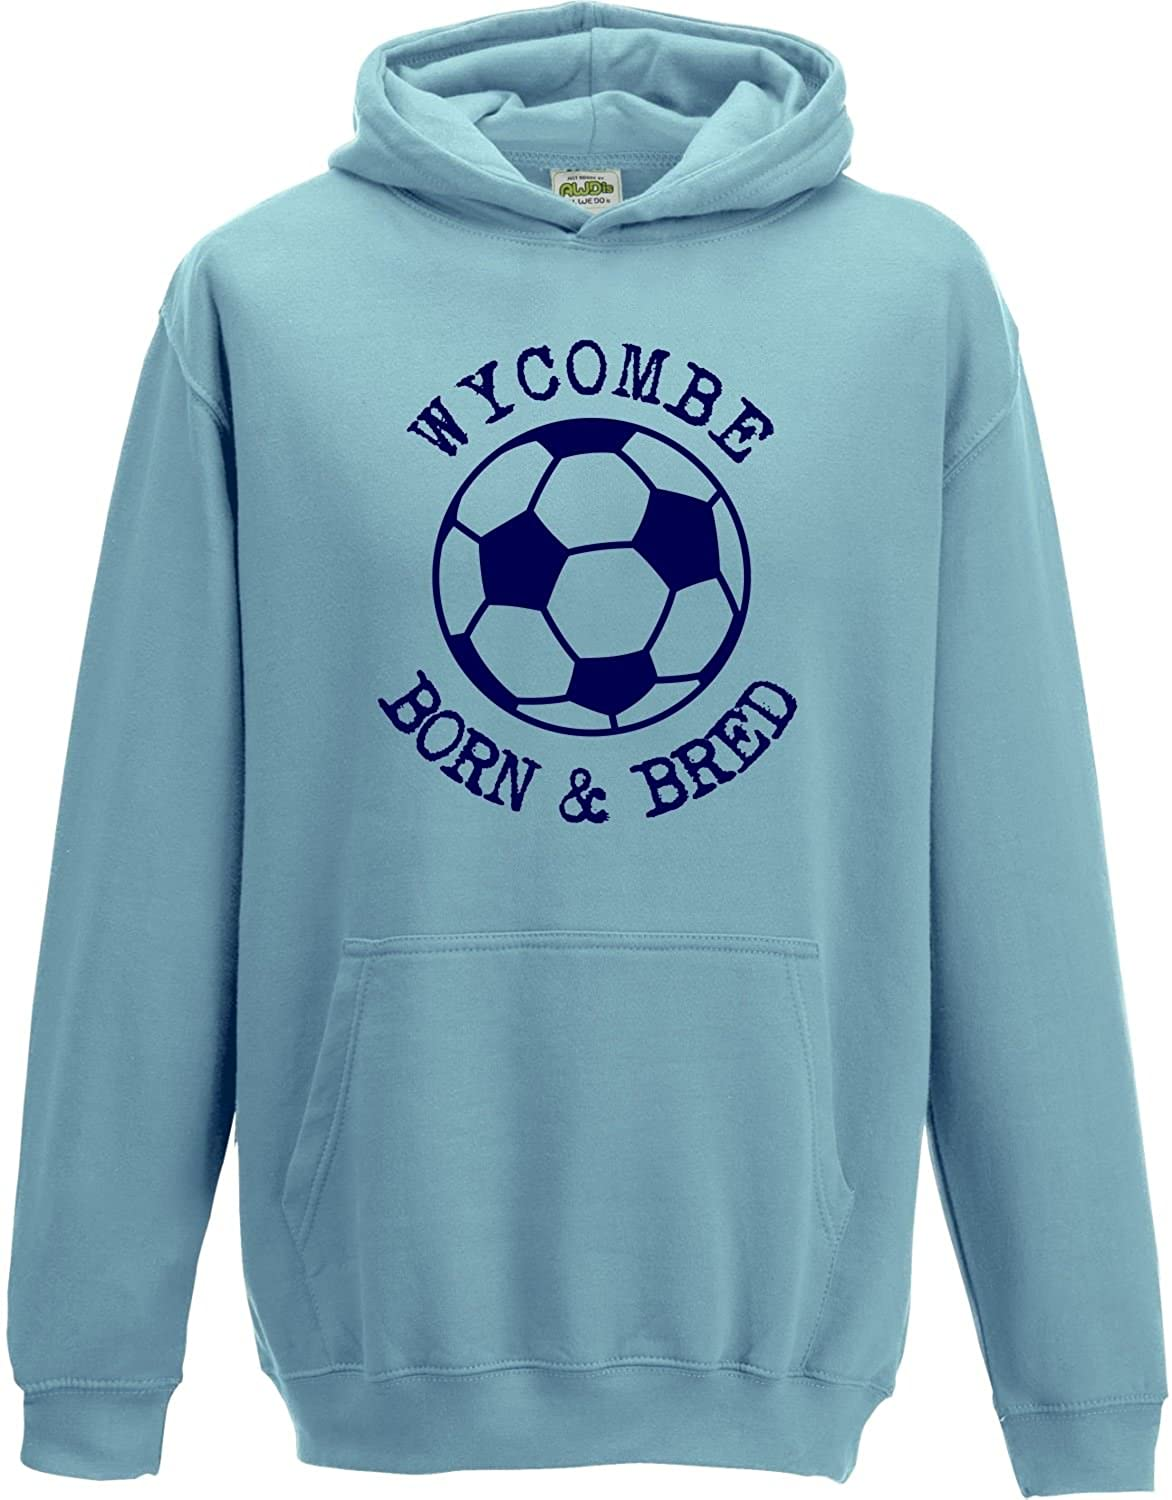 Hat-Trick Designs Wycombe Wanderers Football Baby/Kids/Childrens Hoodie Sweatshirt-Sky Blue-Born & Bred-Unisex Gift